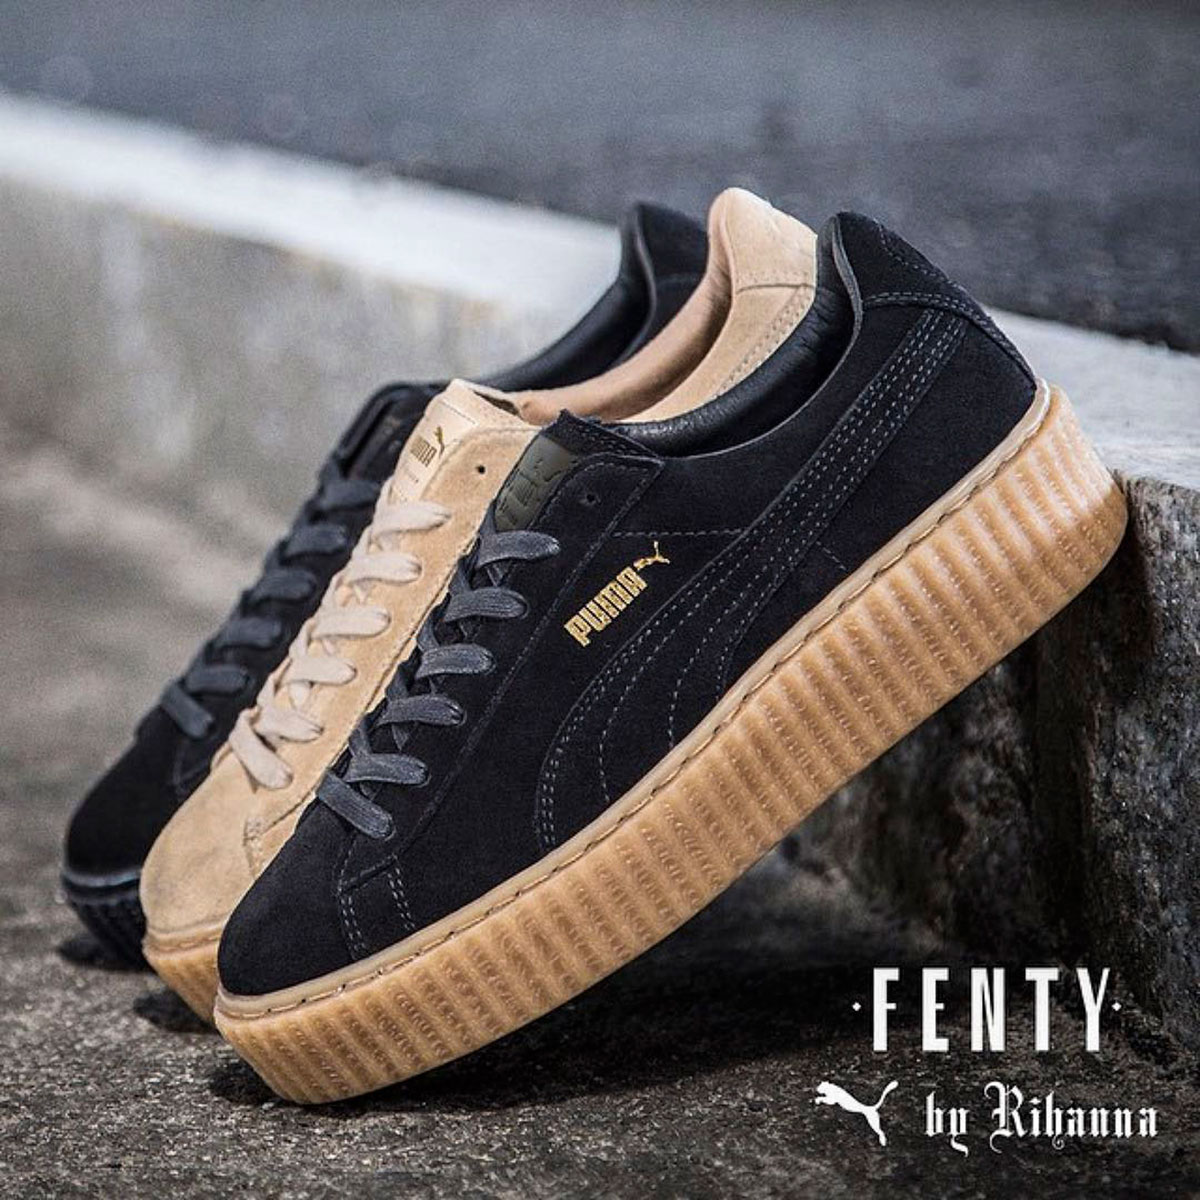 Fenty Puma Shoes